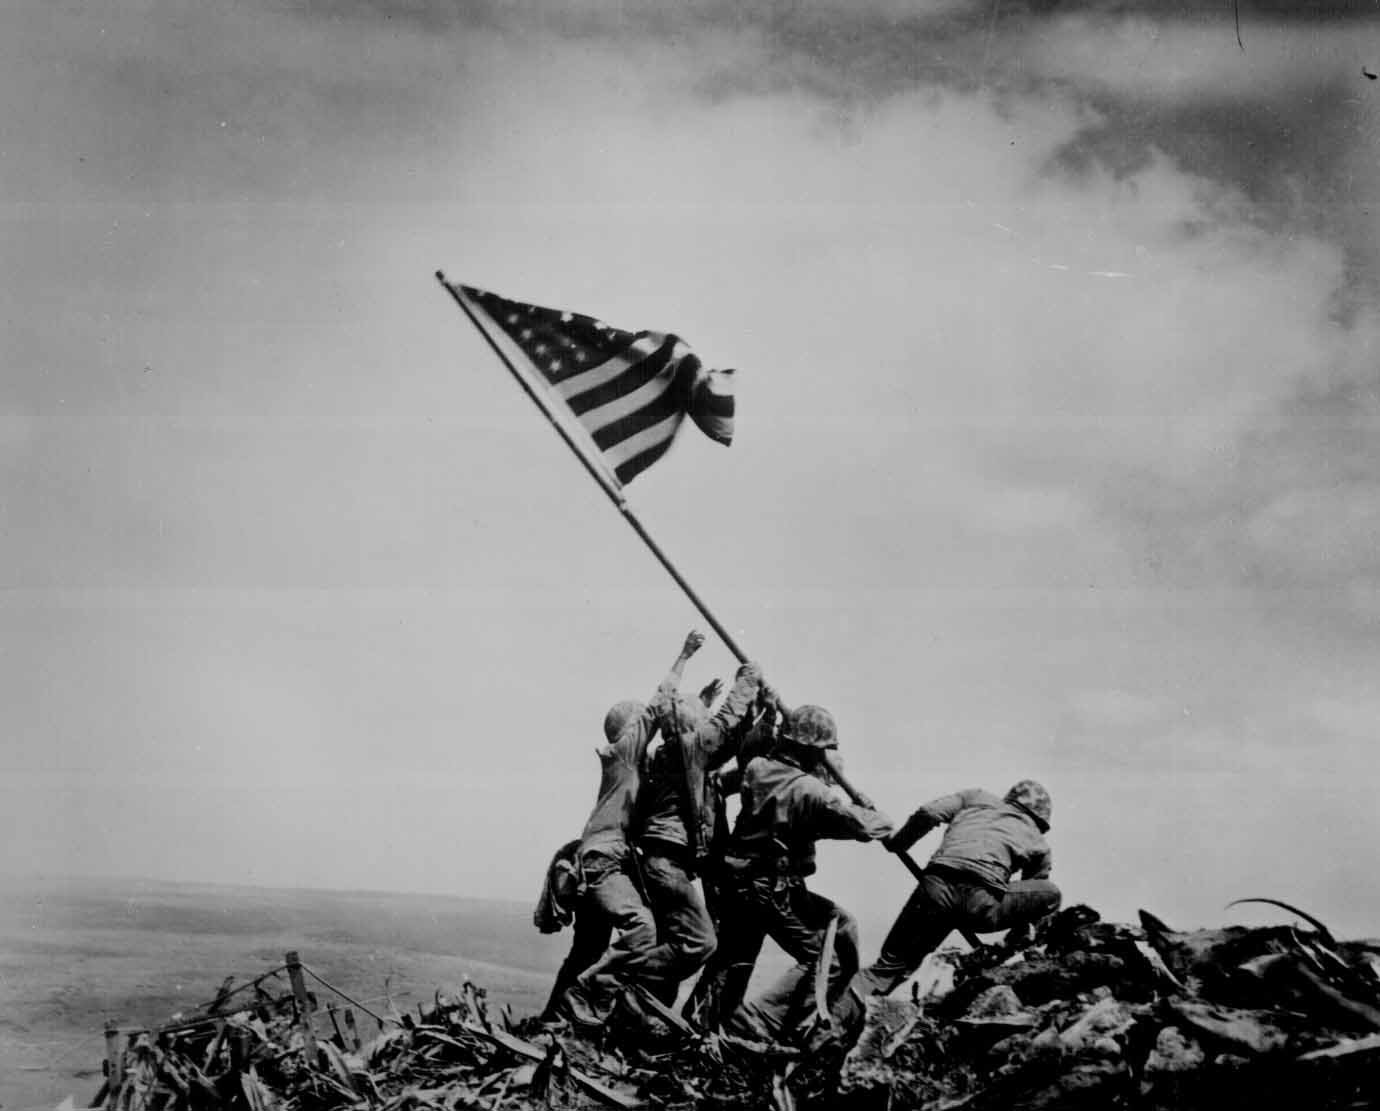 This week marks the anniversary of the famous flag raising over Iwo Jima during World War II. The image was captured in this Pulitzer Prize-winning picture by Associated Press photographer Joe Rosenthal. (Source: National Archives)